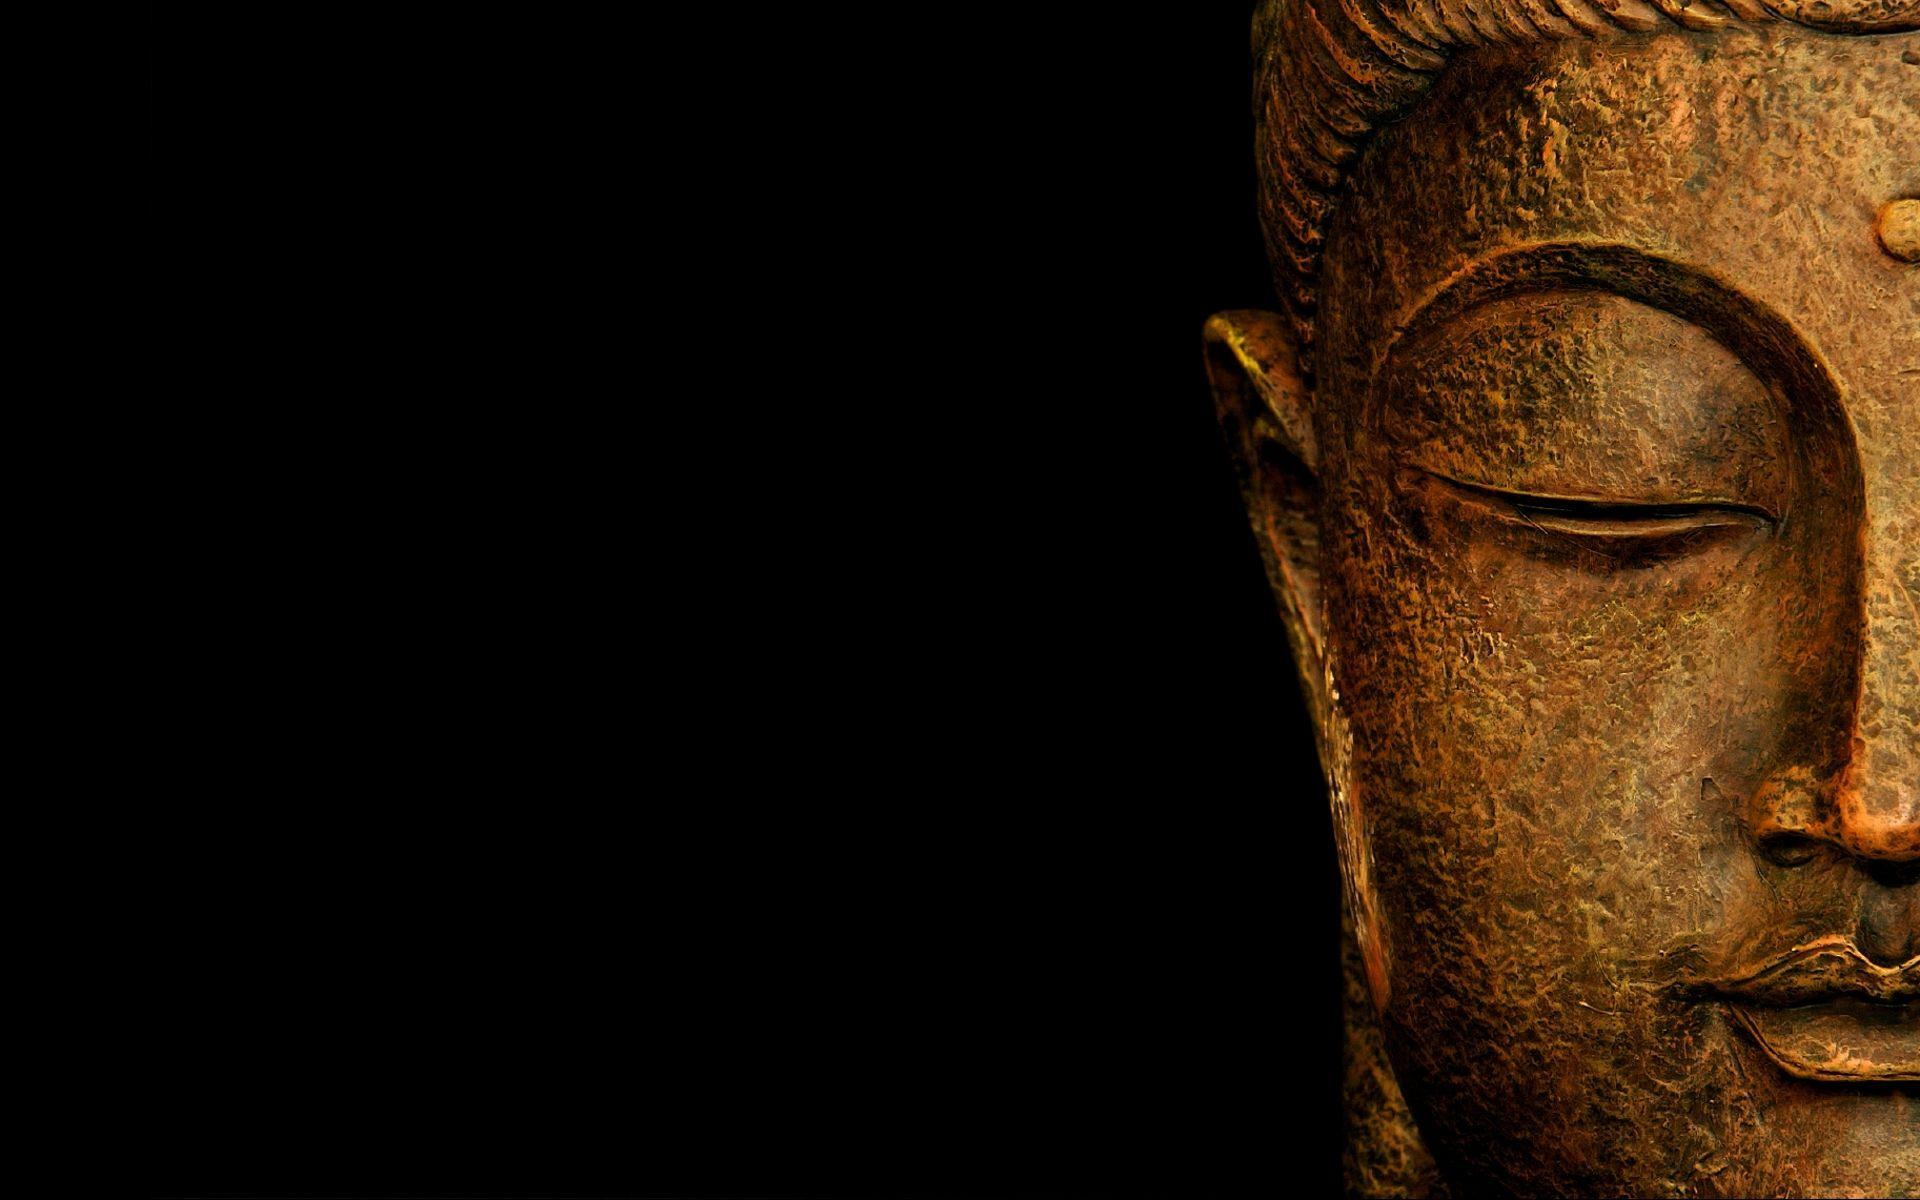 Buddha wallpapers for your desktop free download 5